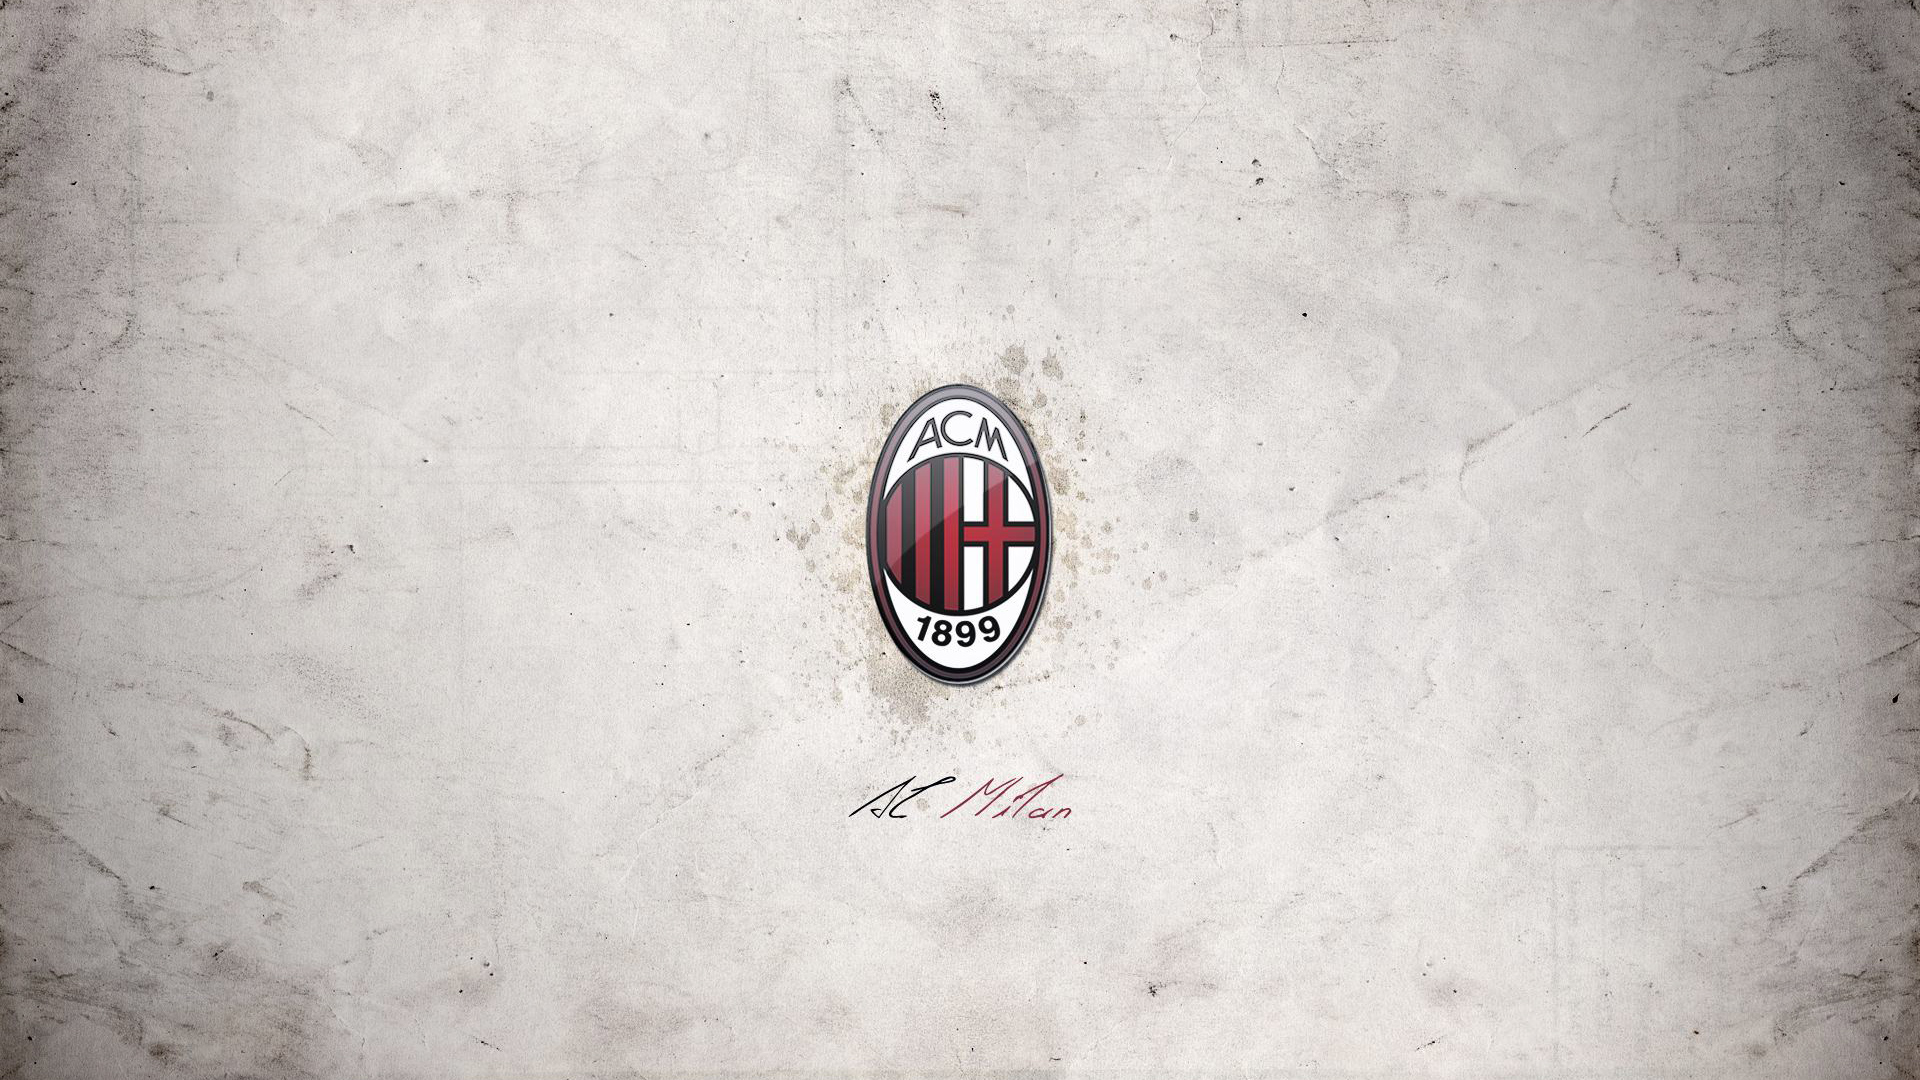 Best AC Milan Football Club Logo Wallpaper Background Wallpaper with 1920x1080